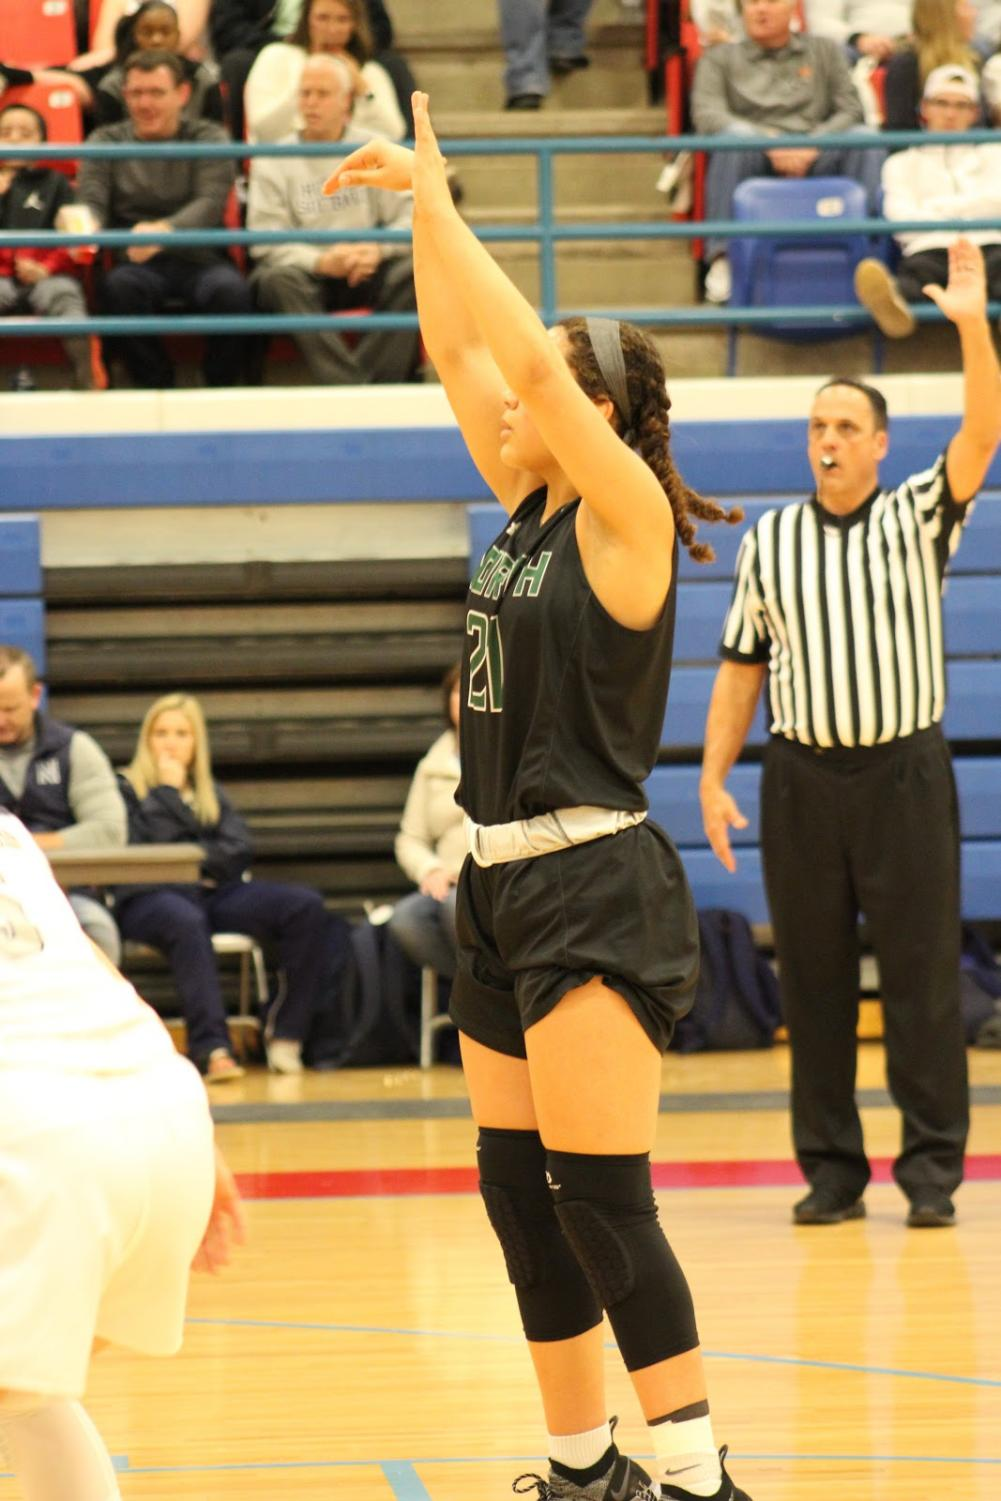 Jacie Evans shooting free throws in the first quarter.